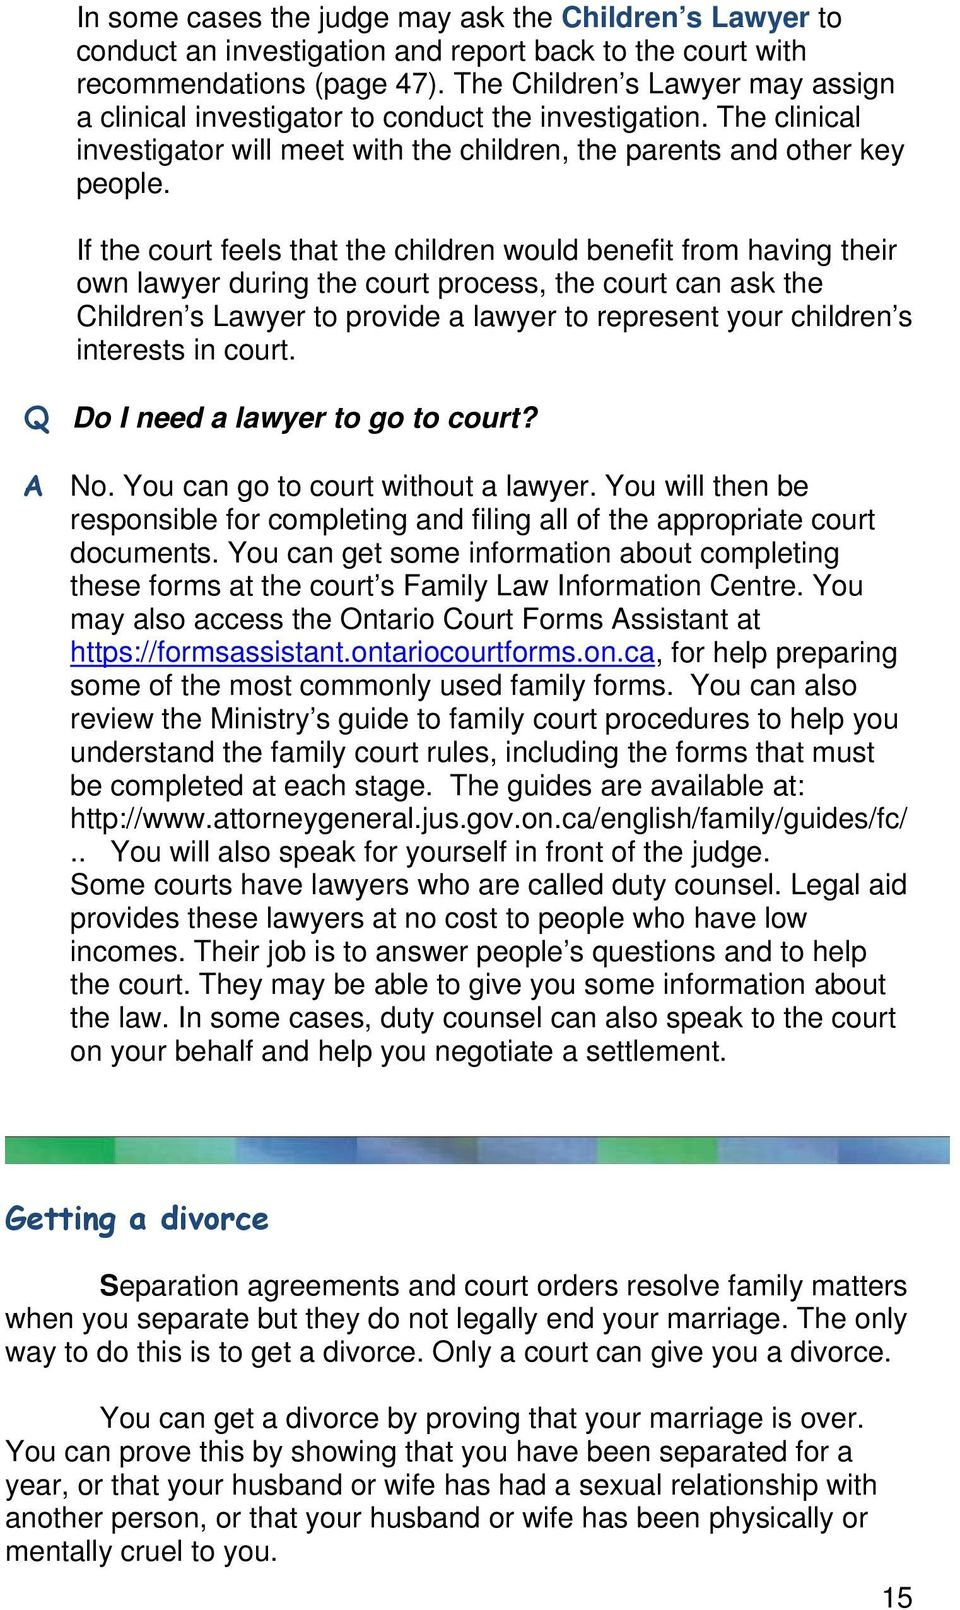 If the court feels that the children would benefit from having their own lawyer during the court process, the court can ask the Children s Lawyer to provide a lawyer to represent your children s